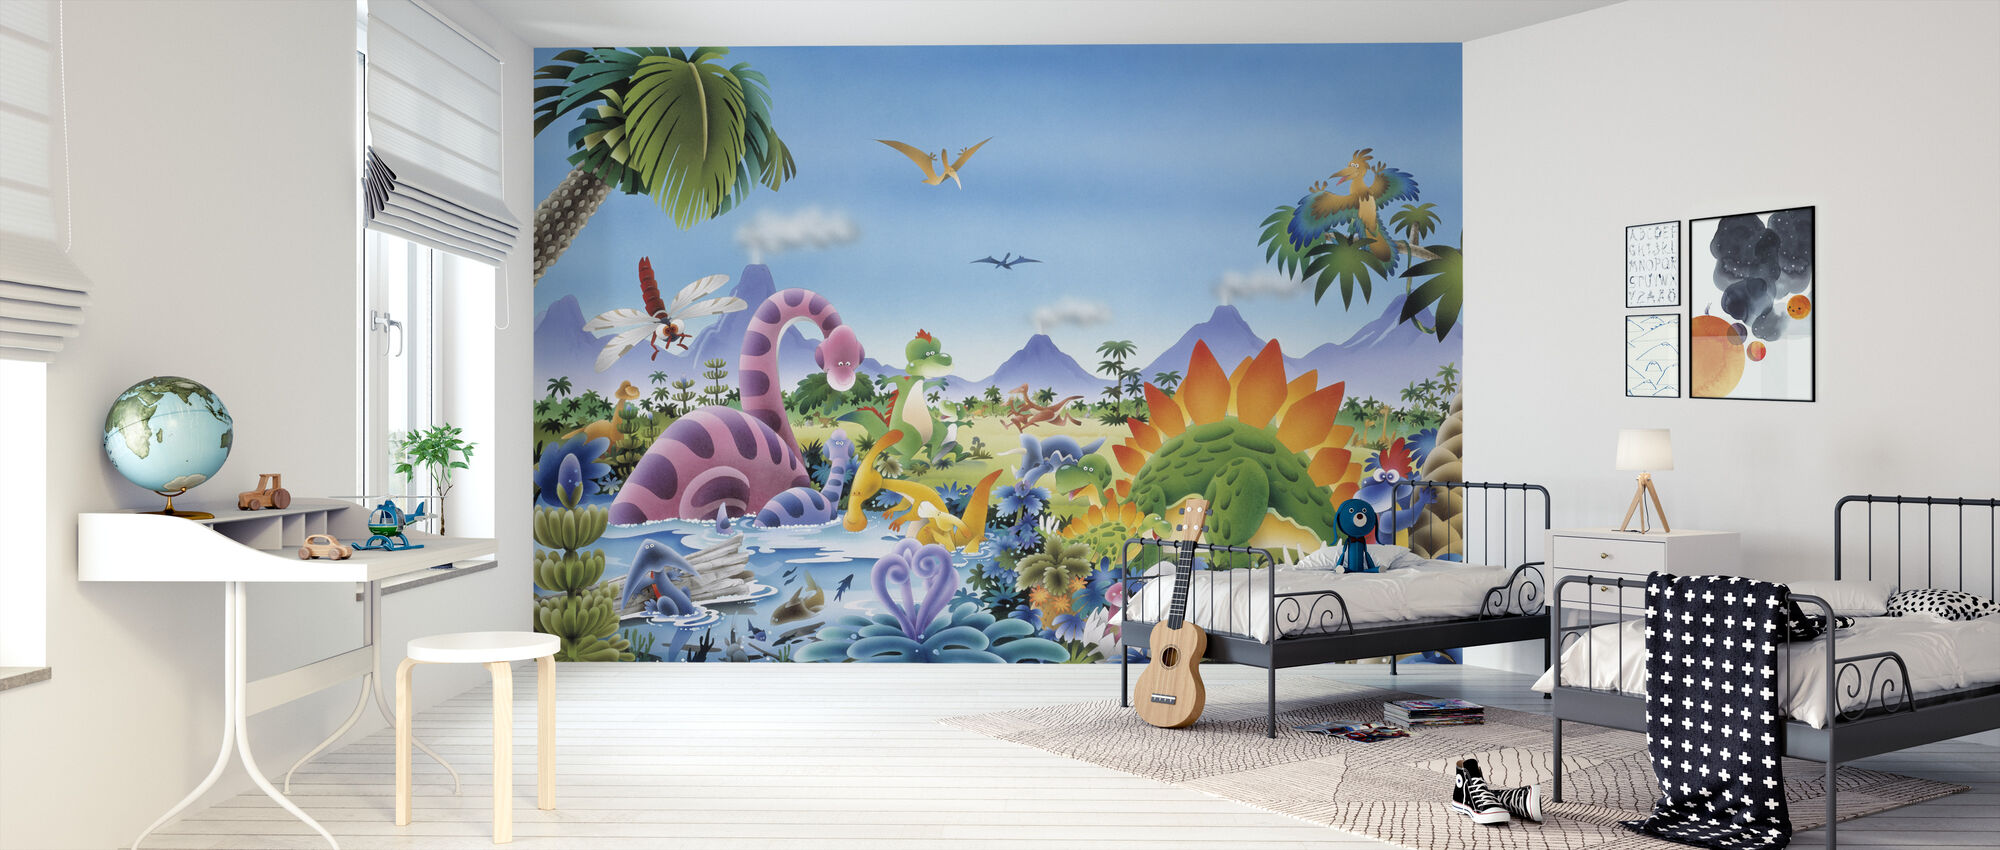 Dinosaur Land - Wallpaper - Kids Room